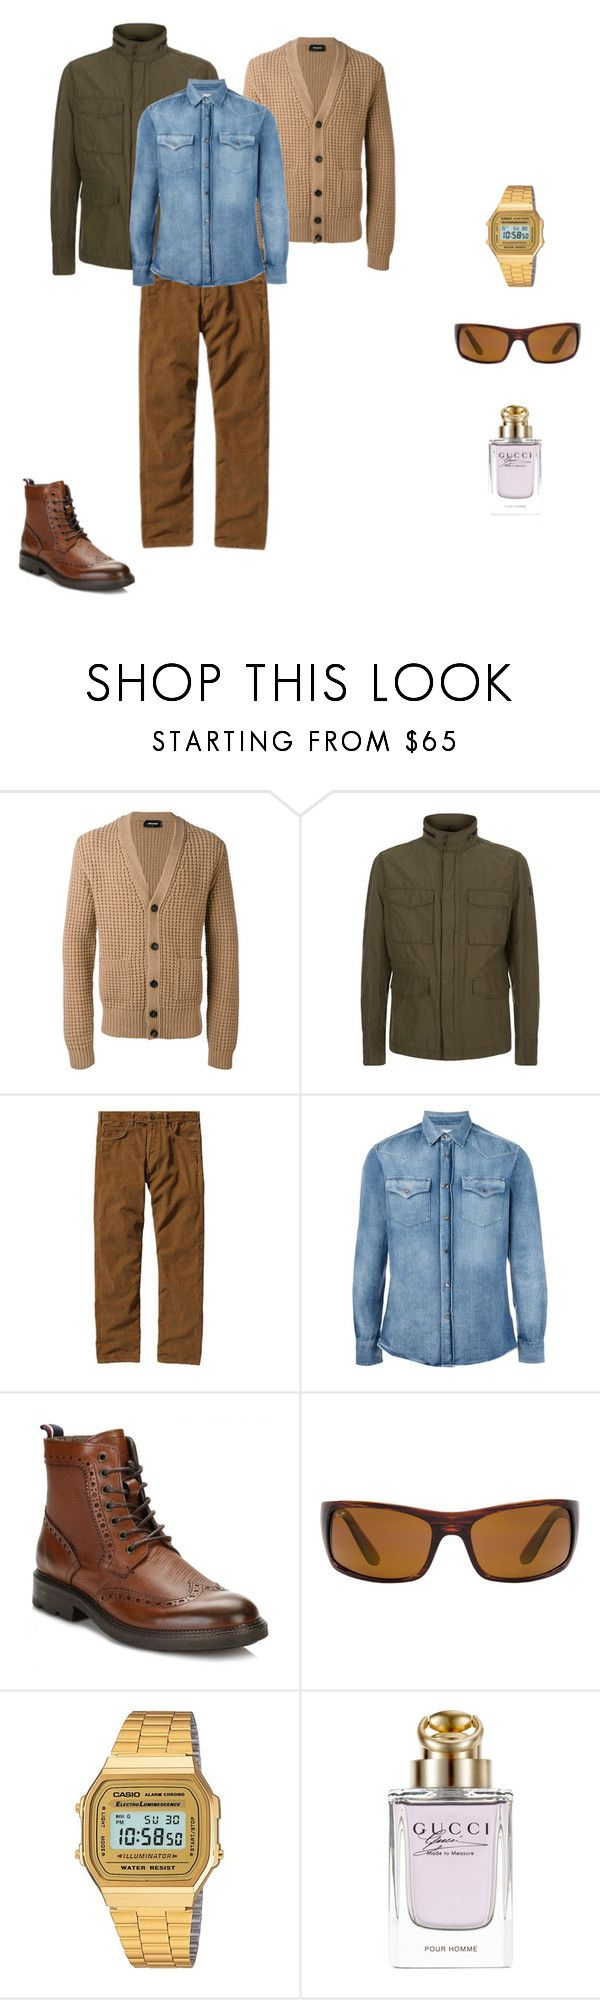 """""""Gettin Jiggy With"""" by lgcrespo on Polyvore featuring Dsquared2, BOSS Orange, Patagonia, Brunello Cucinelli, Tommy Hilfiger, Maui Jim, G-Shock, Gucci, men's fashion y menswear"""